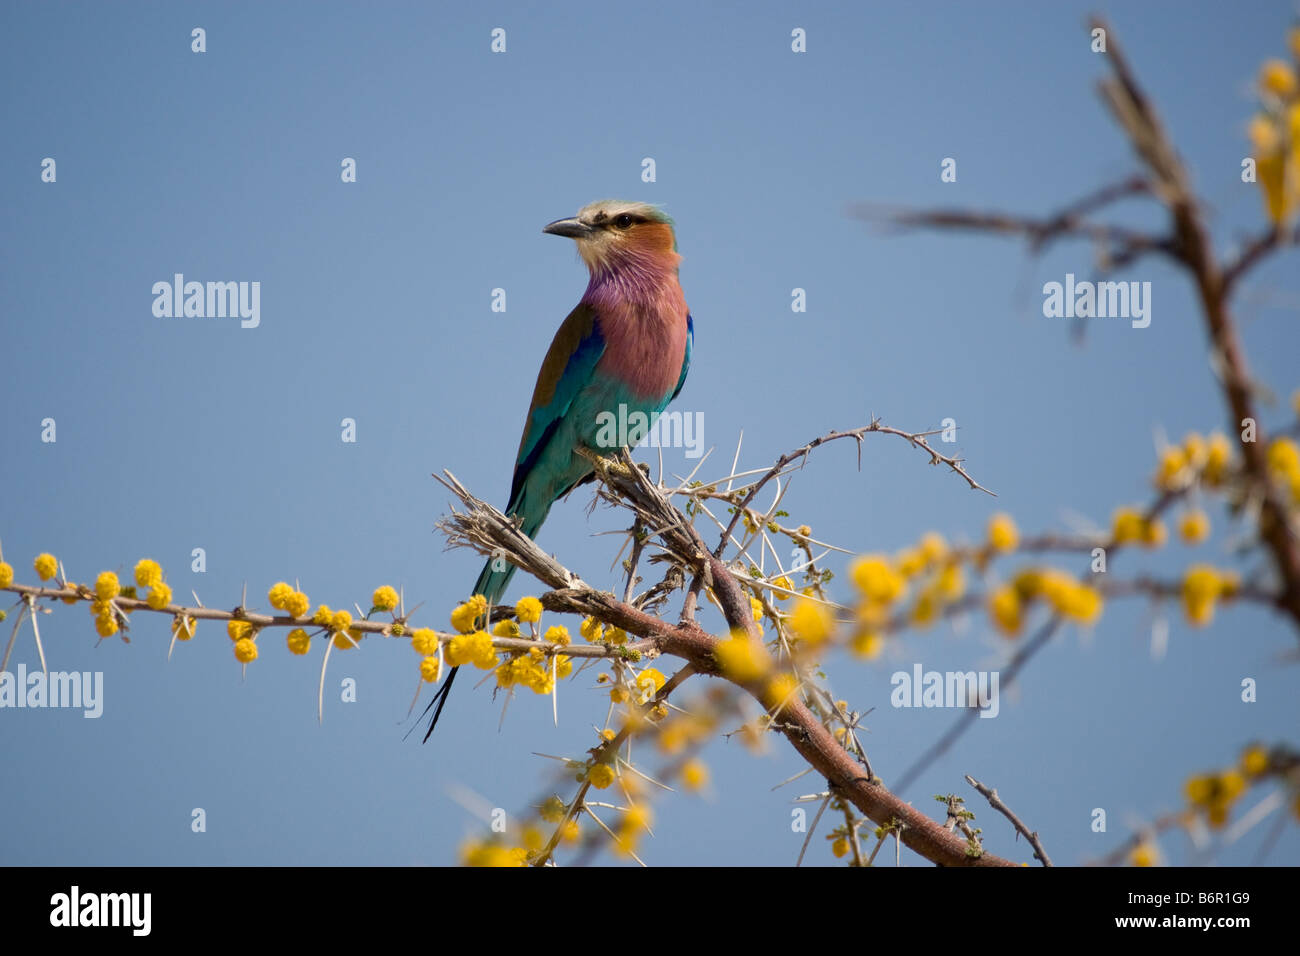 Lilac-breasted Roller Perched on Blooming Acacia, Etosha National Park, Namibia Stock Photo